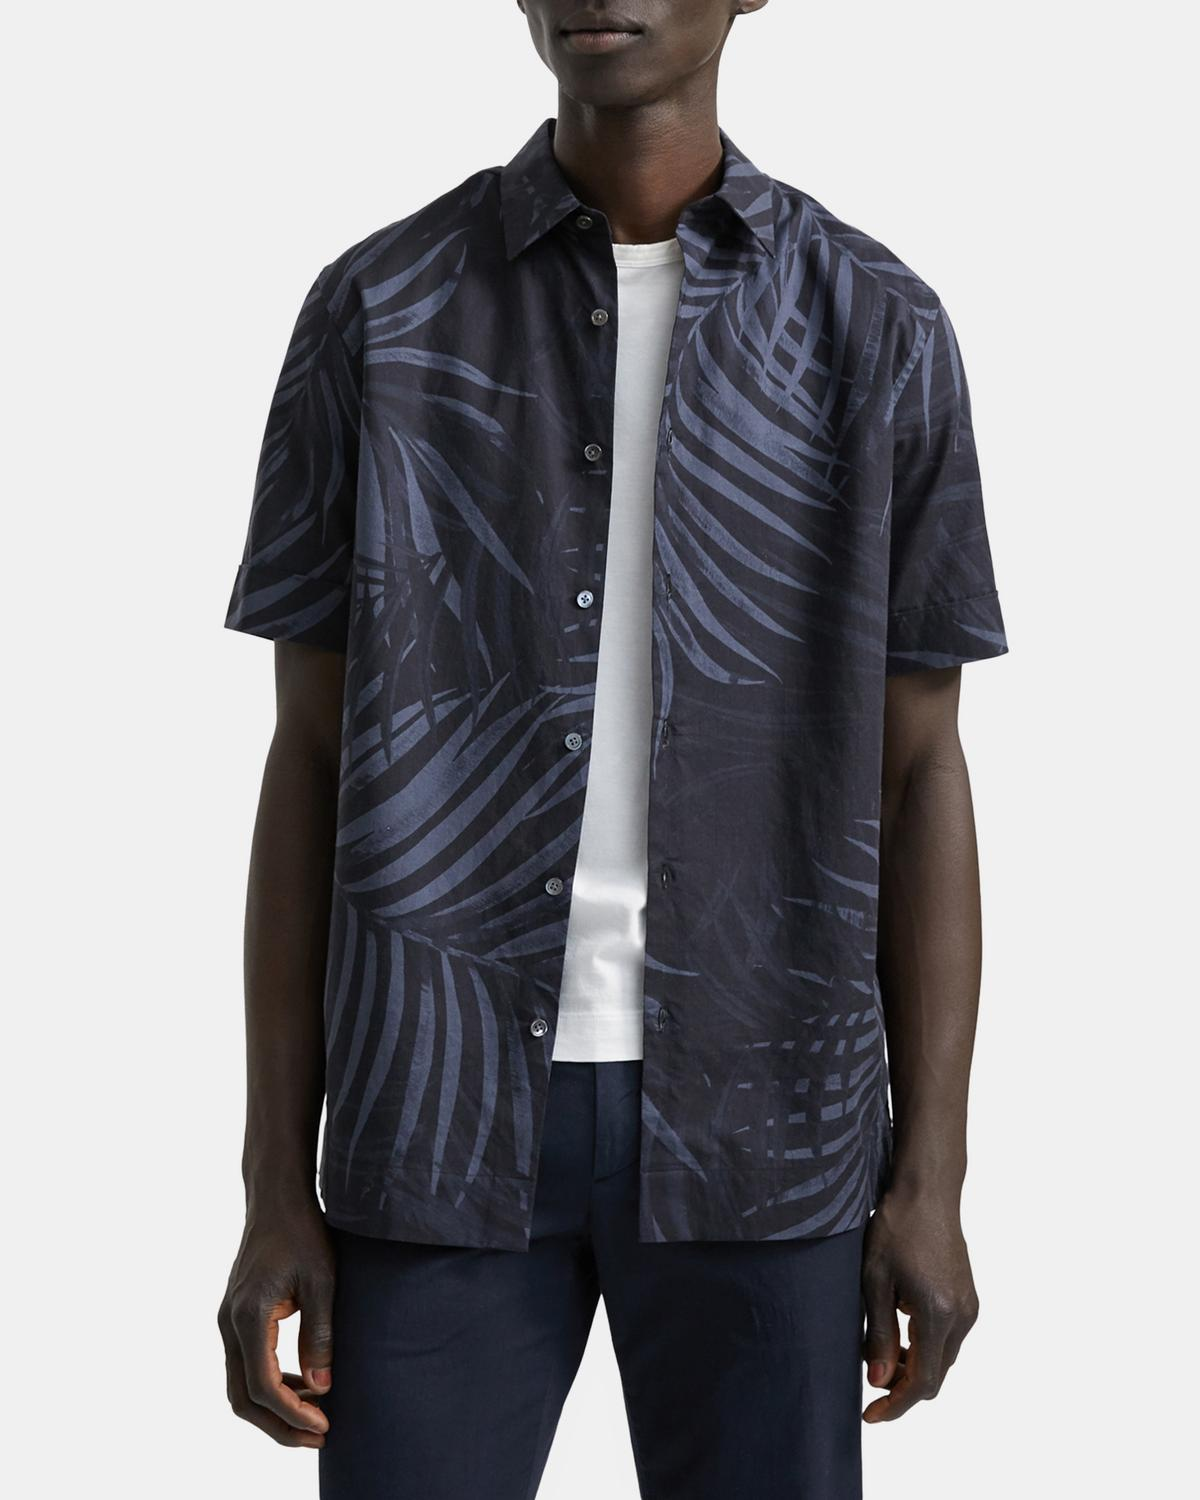 Menlo Short-Sleeve Shirt in Palm Print Stretch Cotton